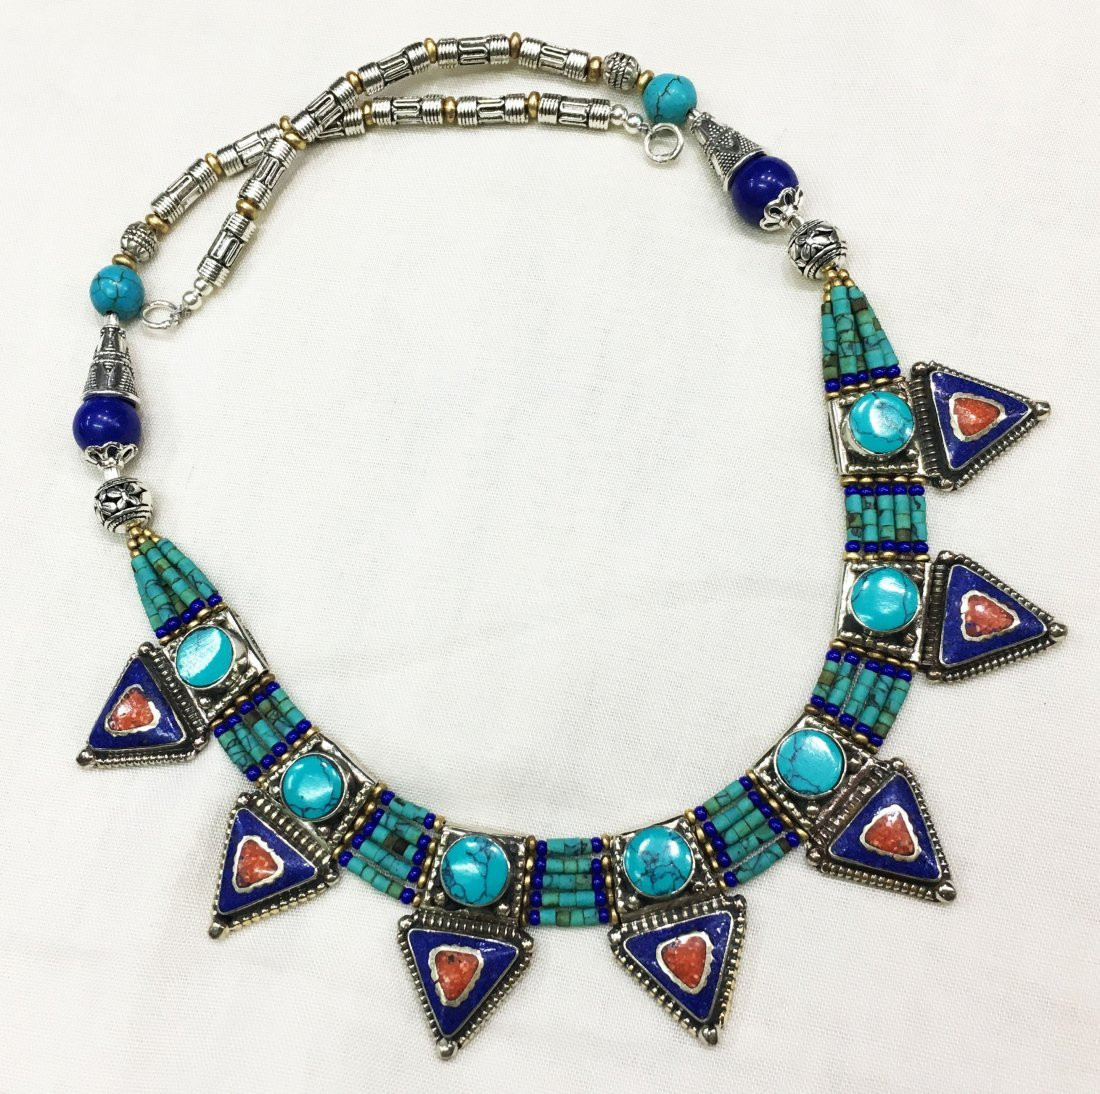 Genuine Turquoise & Lapis Beads Necklace